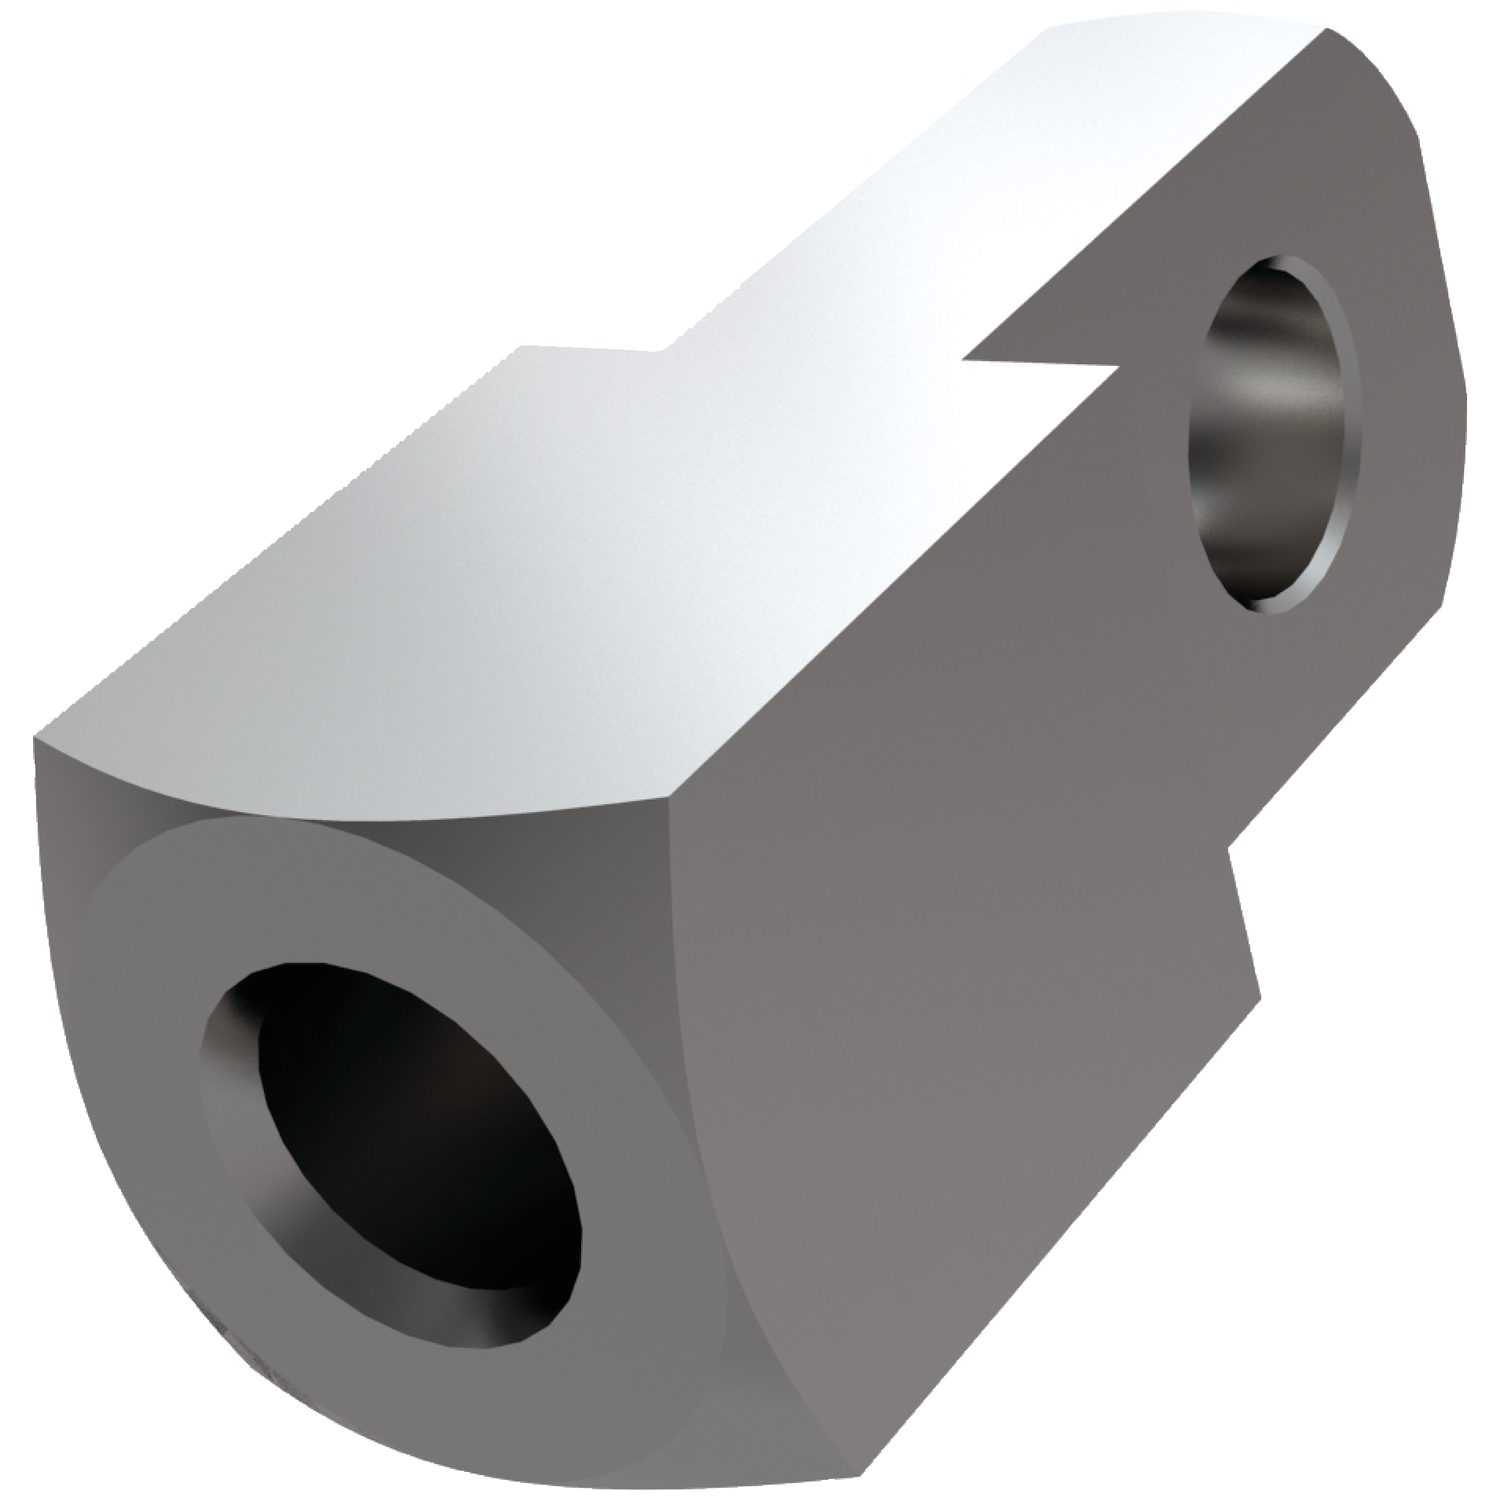 R3427 - Stainless Mating Piece for Clevis Joints